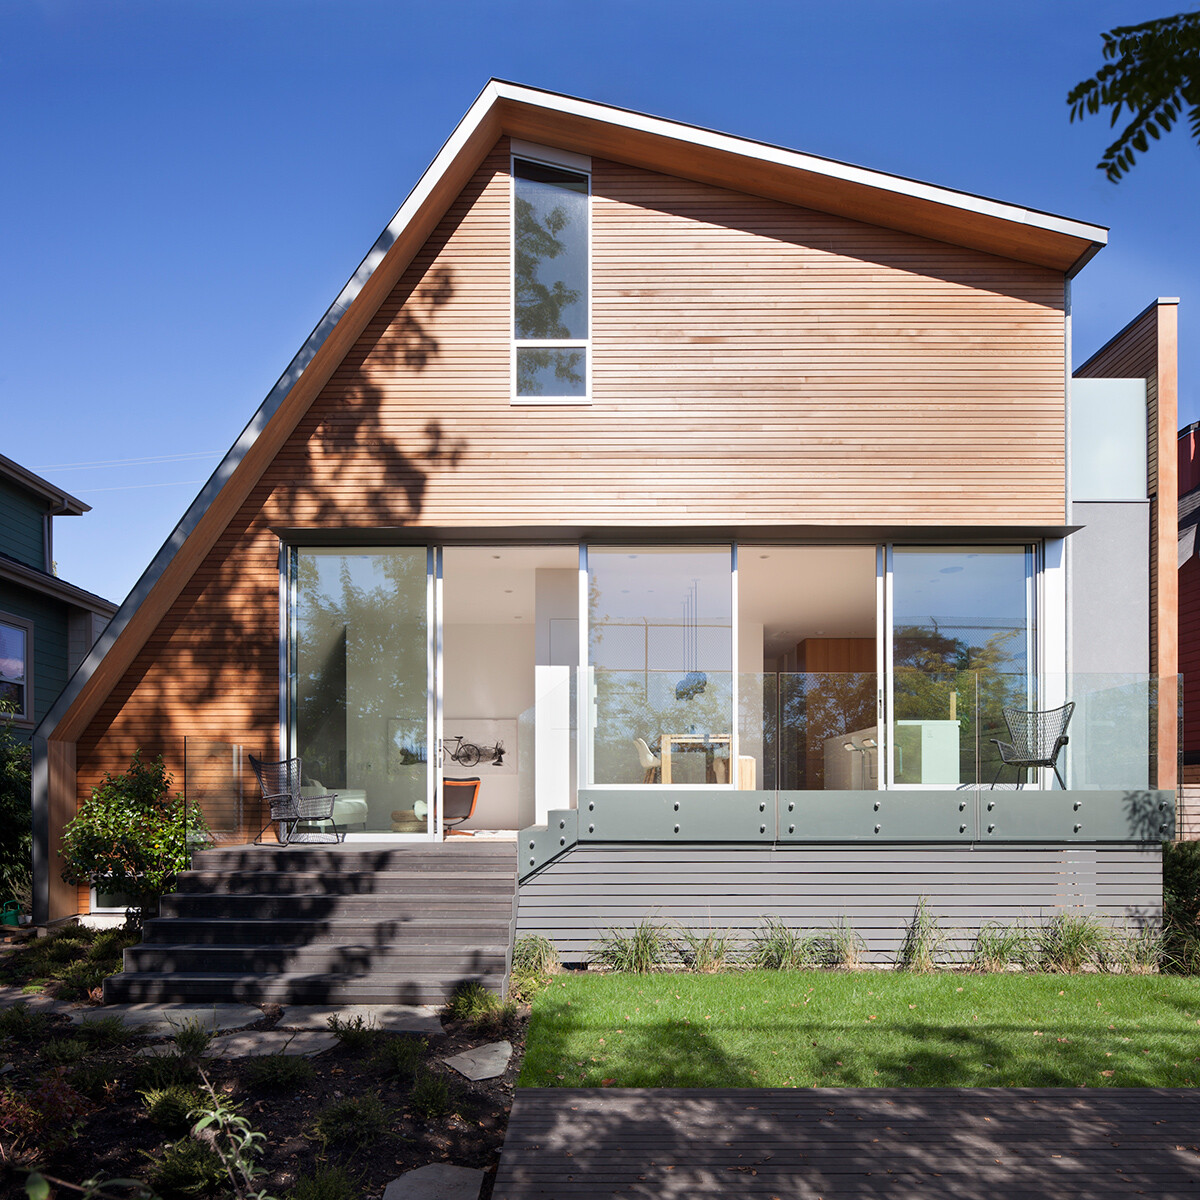 East Van House: residence in Vancouver with an asymmetric geometry